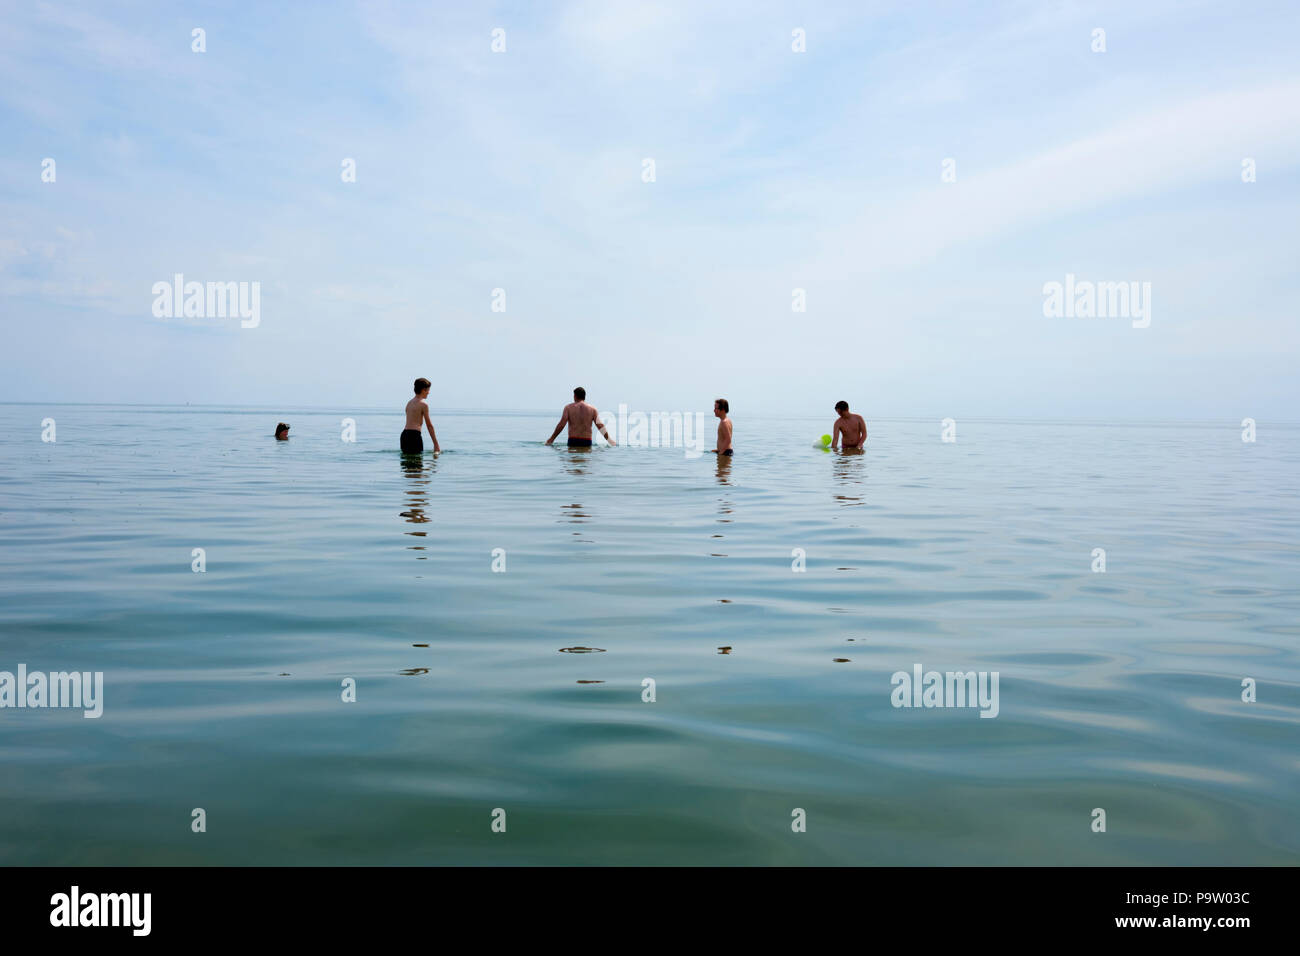 landscape view of four boys and a male adult standing up to their waists in a calm mediterranean sea, laughing during a game playing with yellow ball - Stock Image